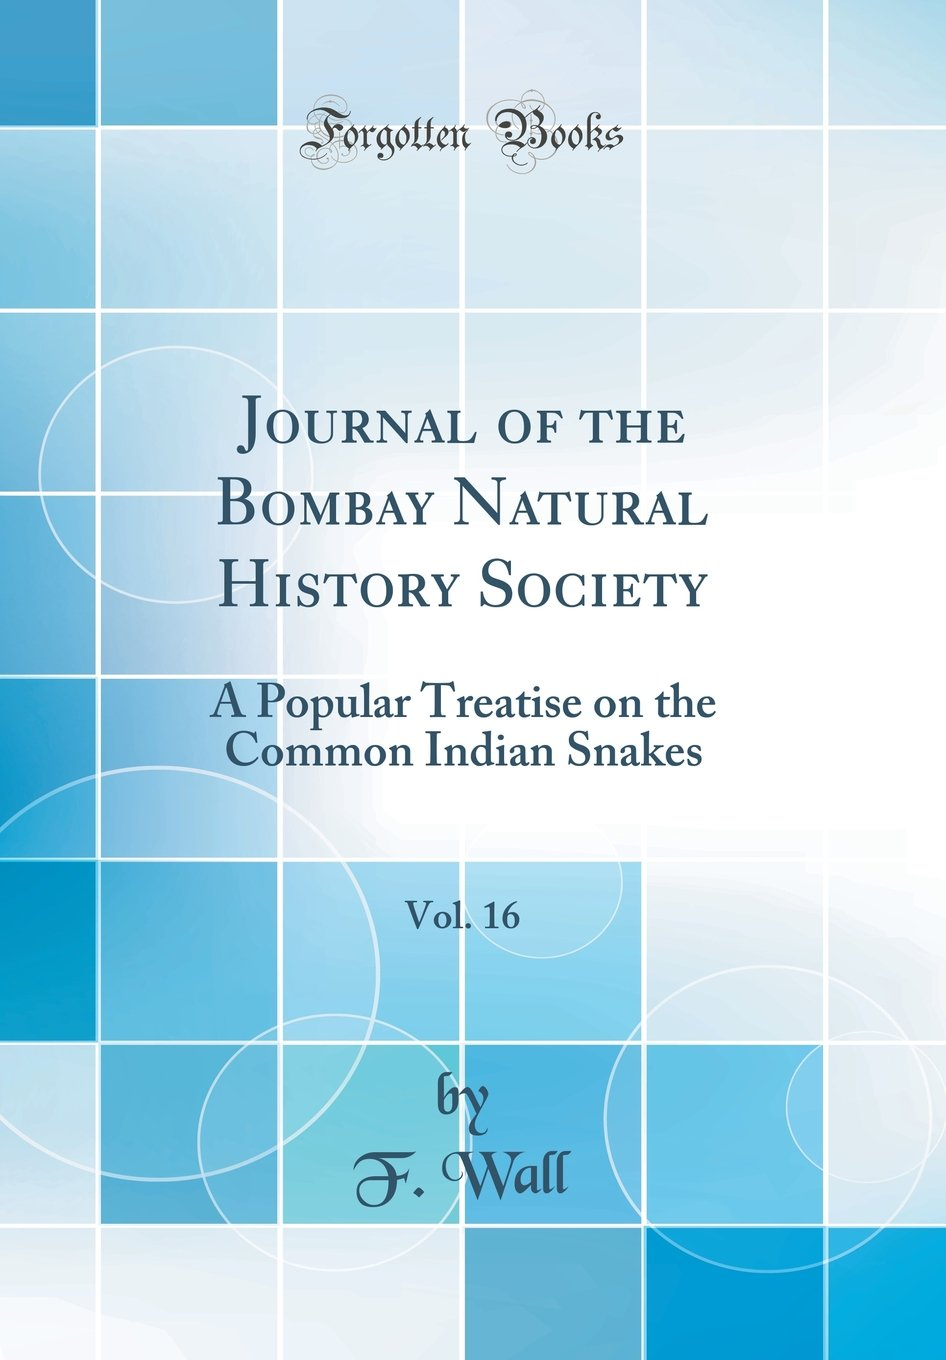 Download Journal of the Bombay Natural History Society, Vol. 16: A Popular Treatise on the Common Indian Snakes (Classic Reprint) PDF Text fb2 book